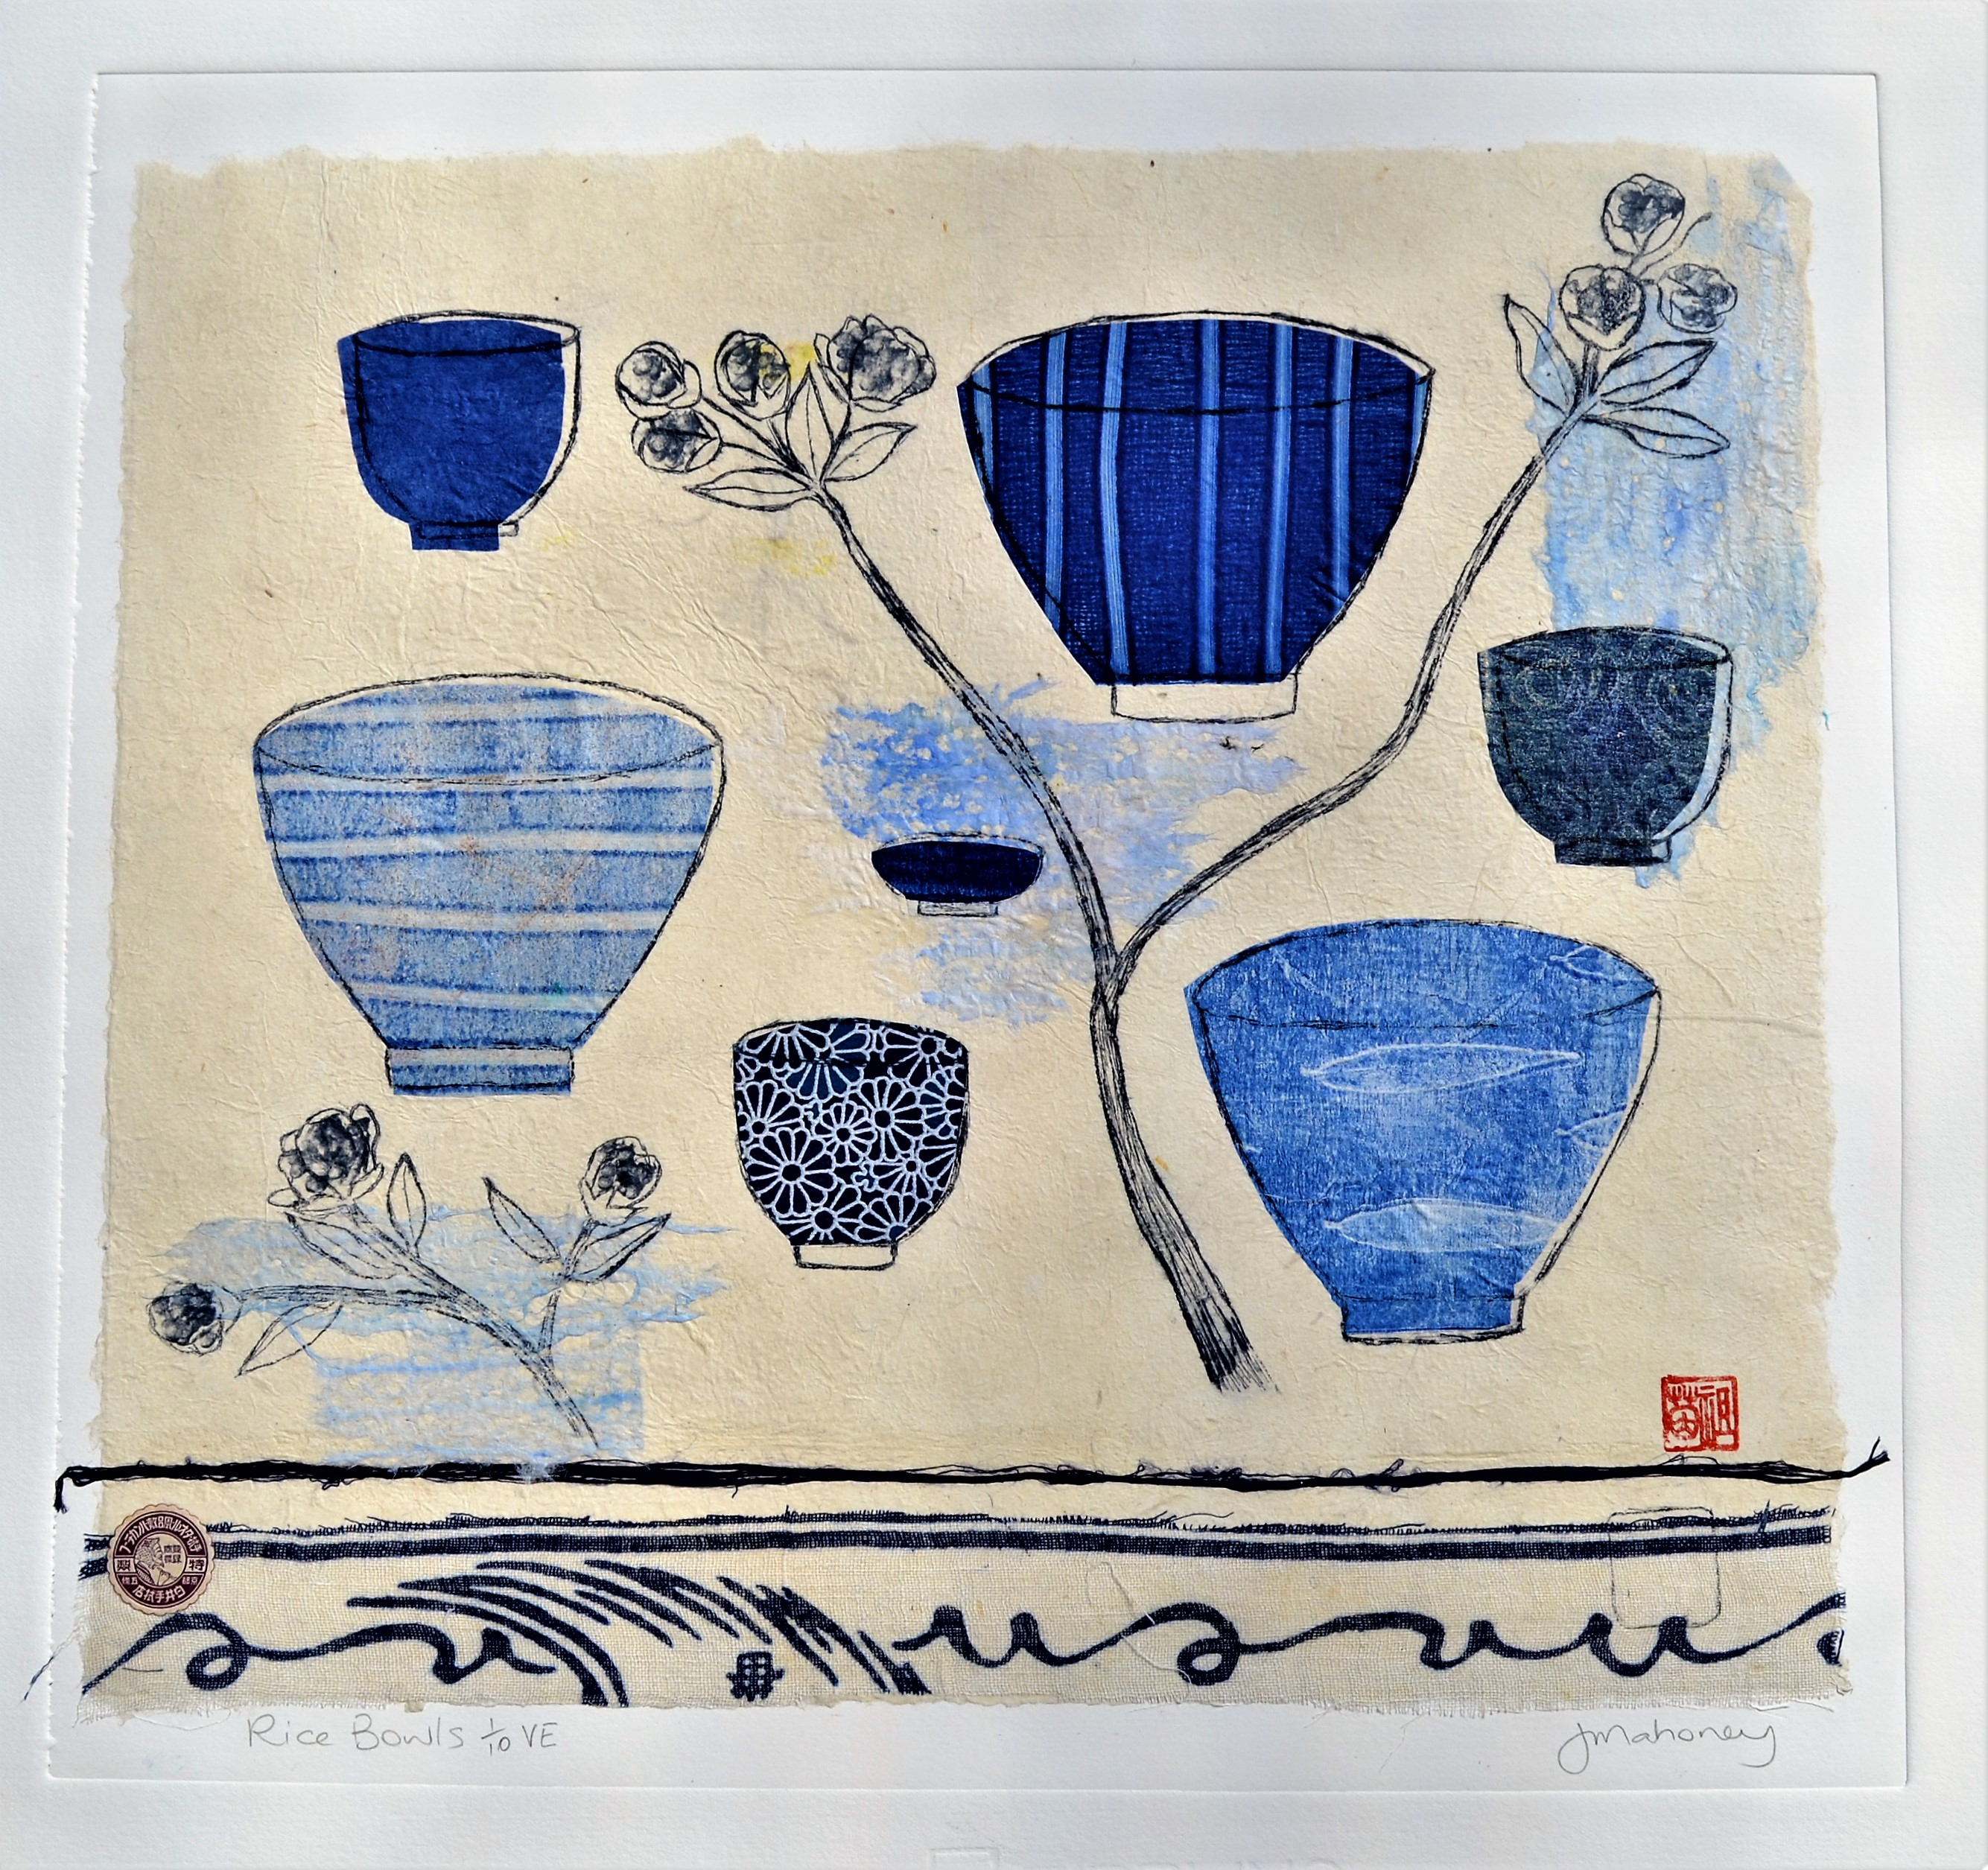 Rice Bowls 1/10 VE